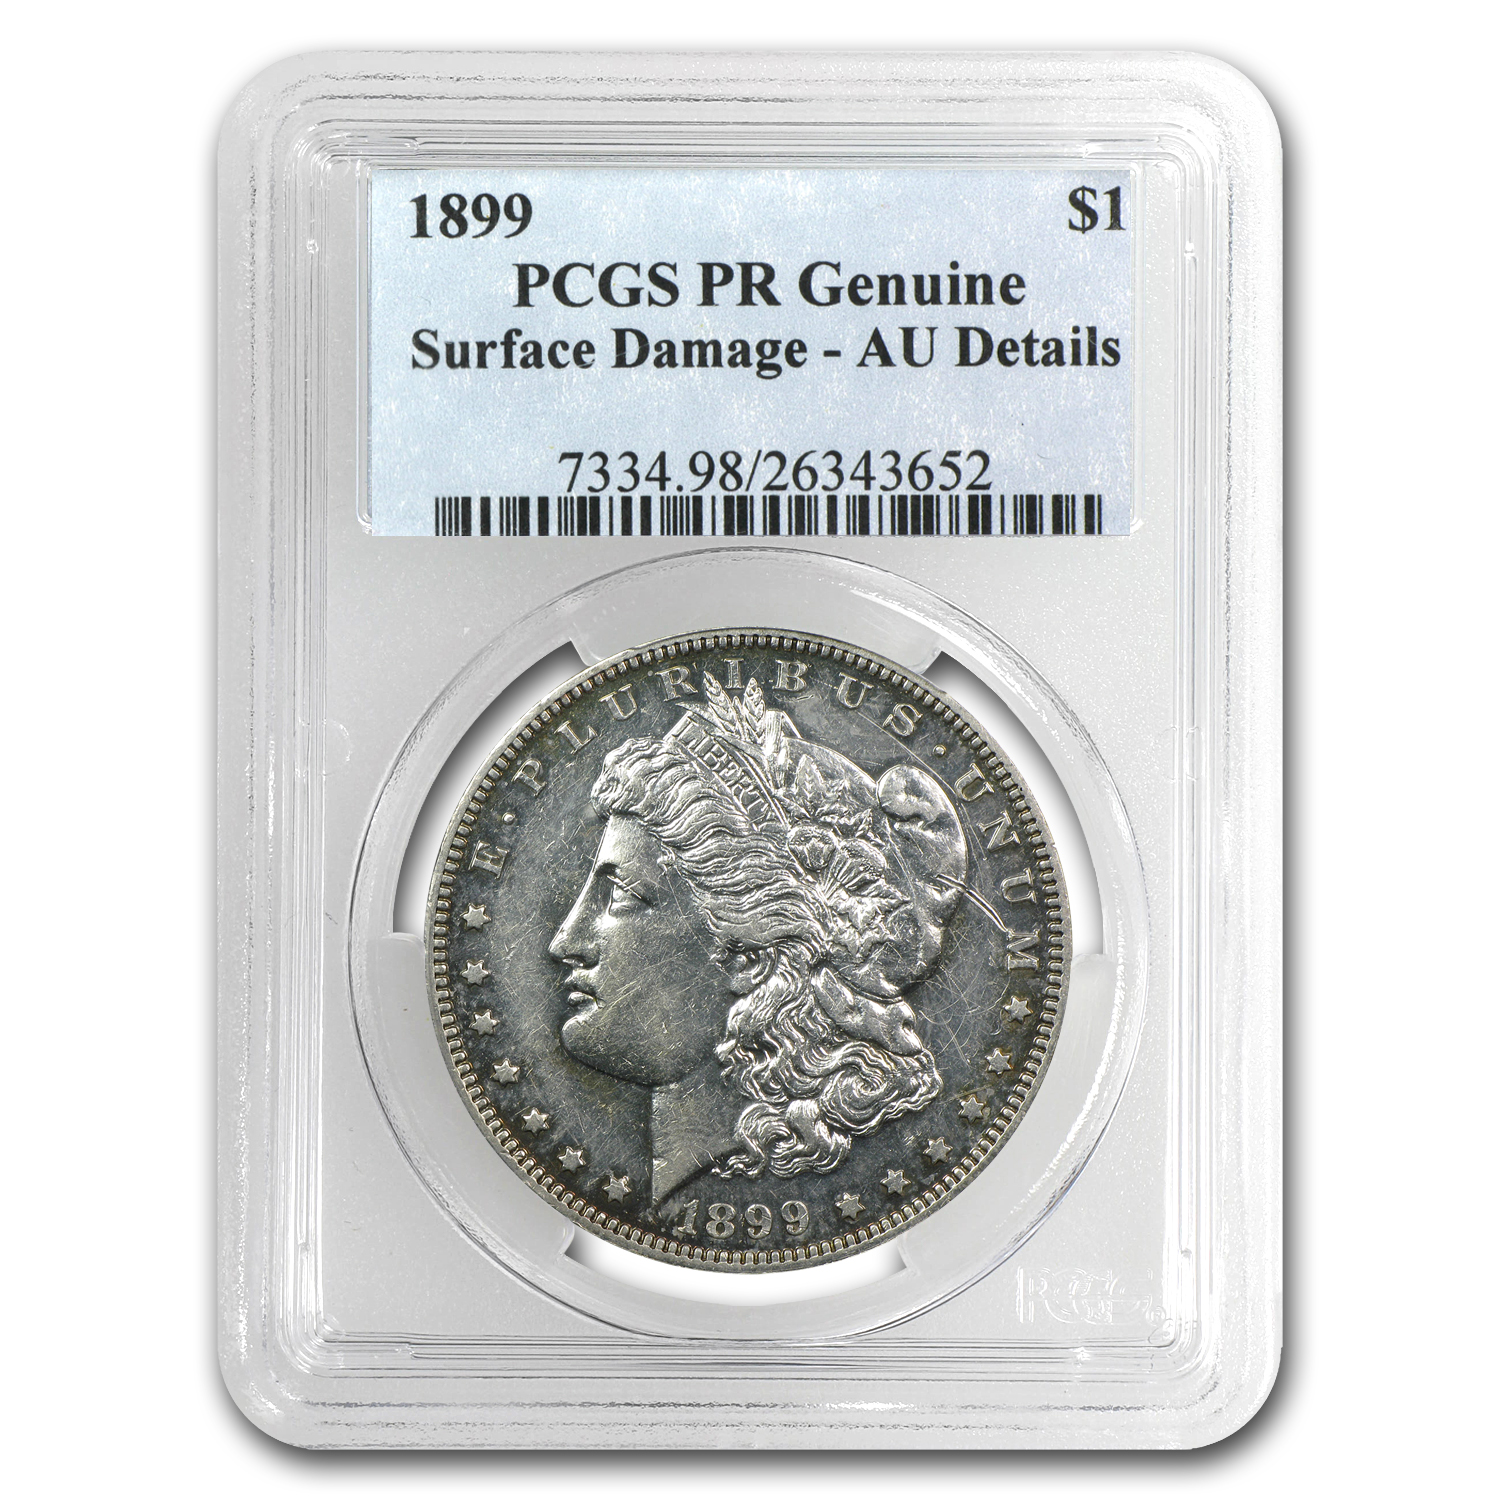 1899 Morgan Dollar Proof-55 Details PCGS (Surface Damage)